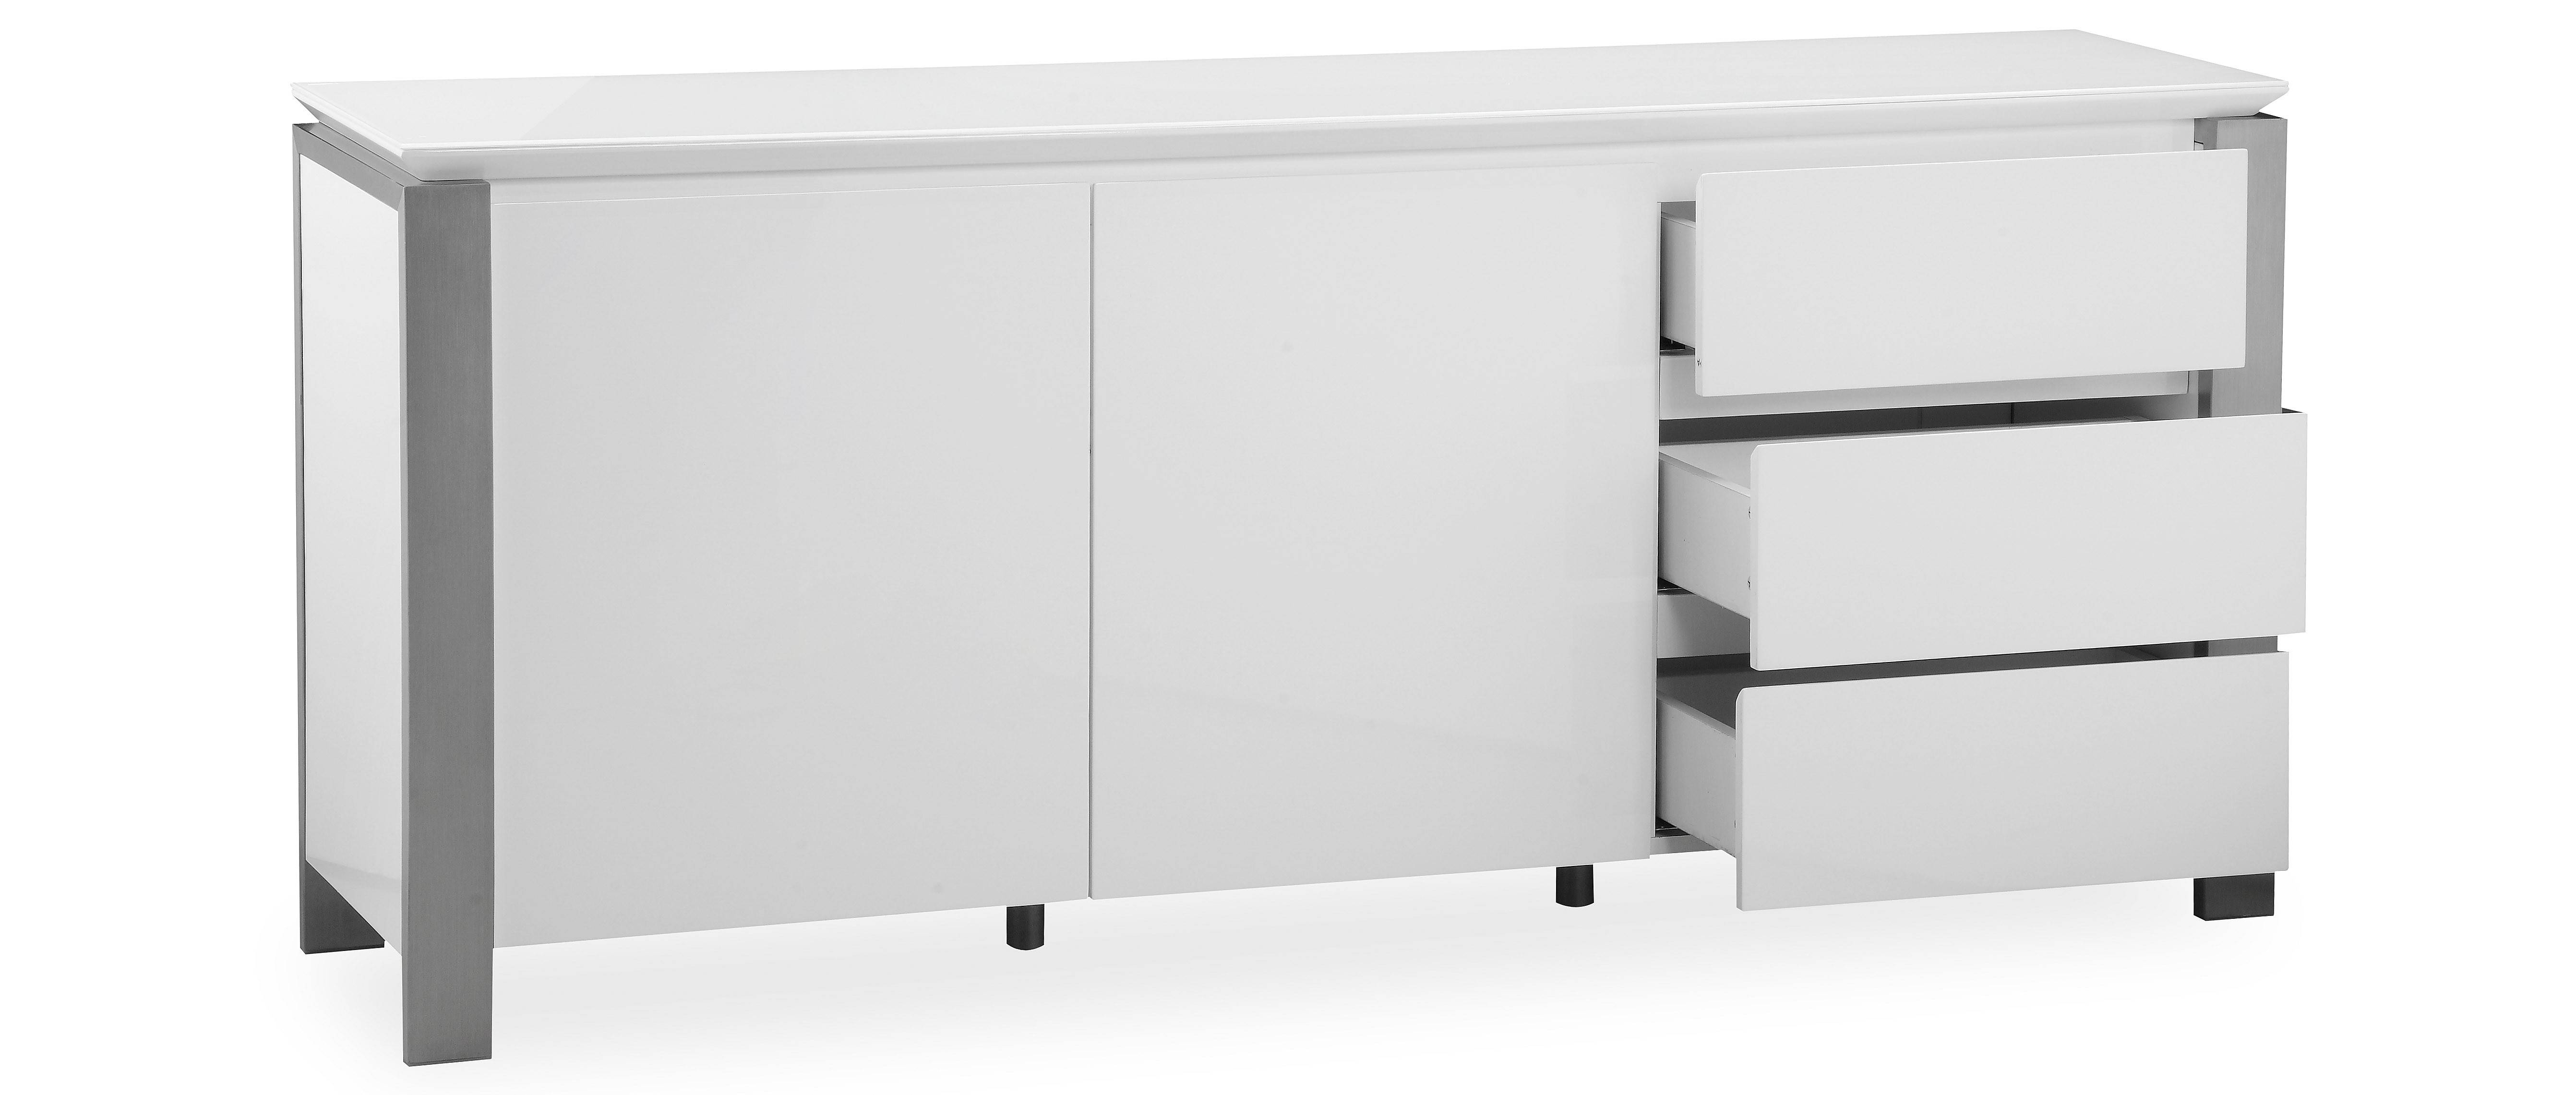 Tribeca – Extra Large Sideboard – White High Gloss For Large White Sideboard (#20 of 20)